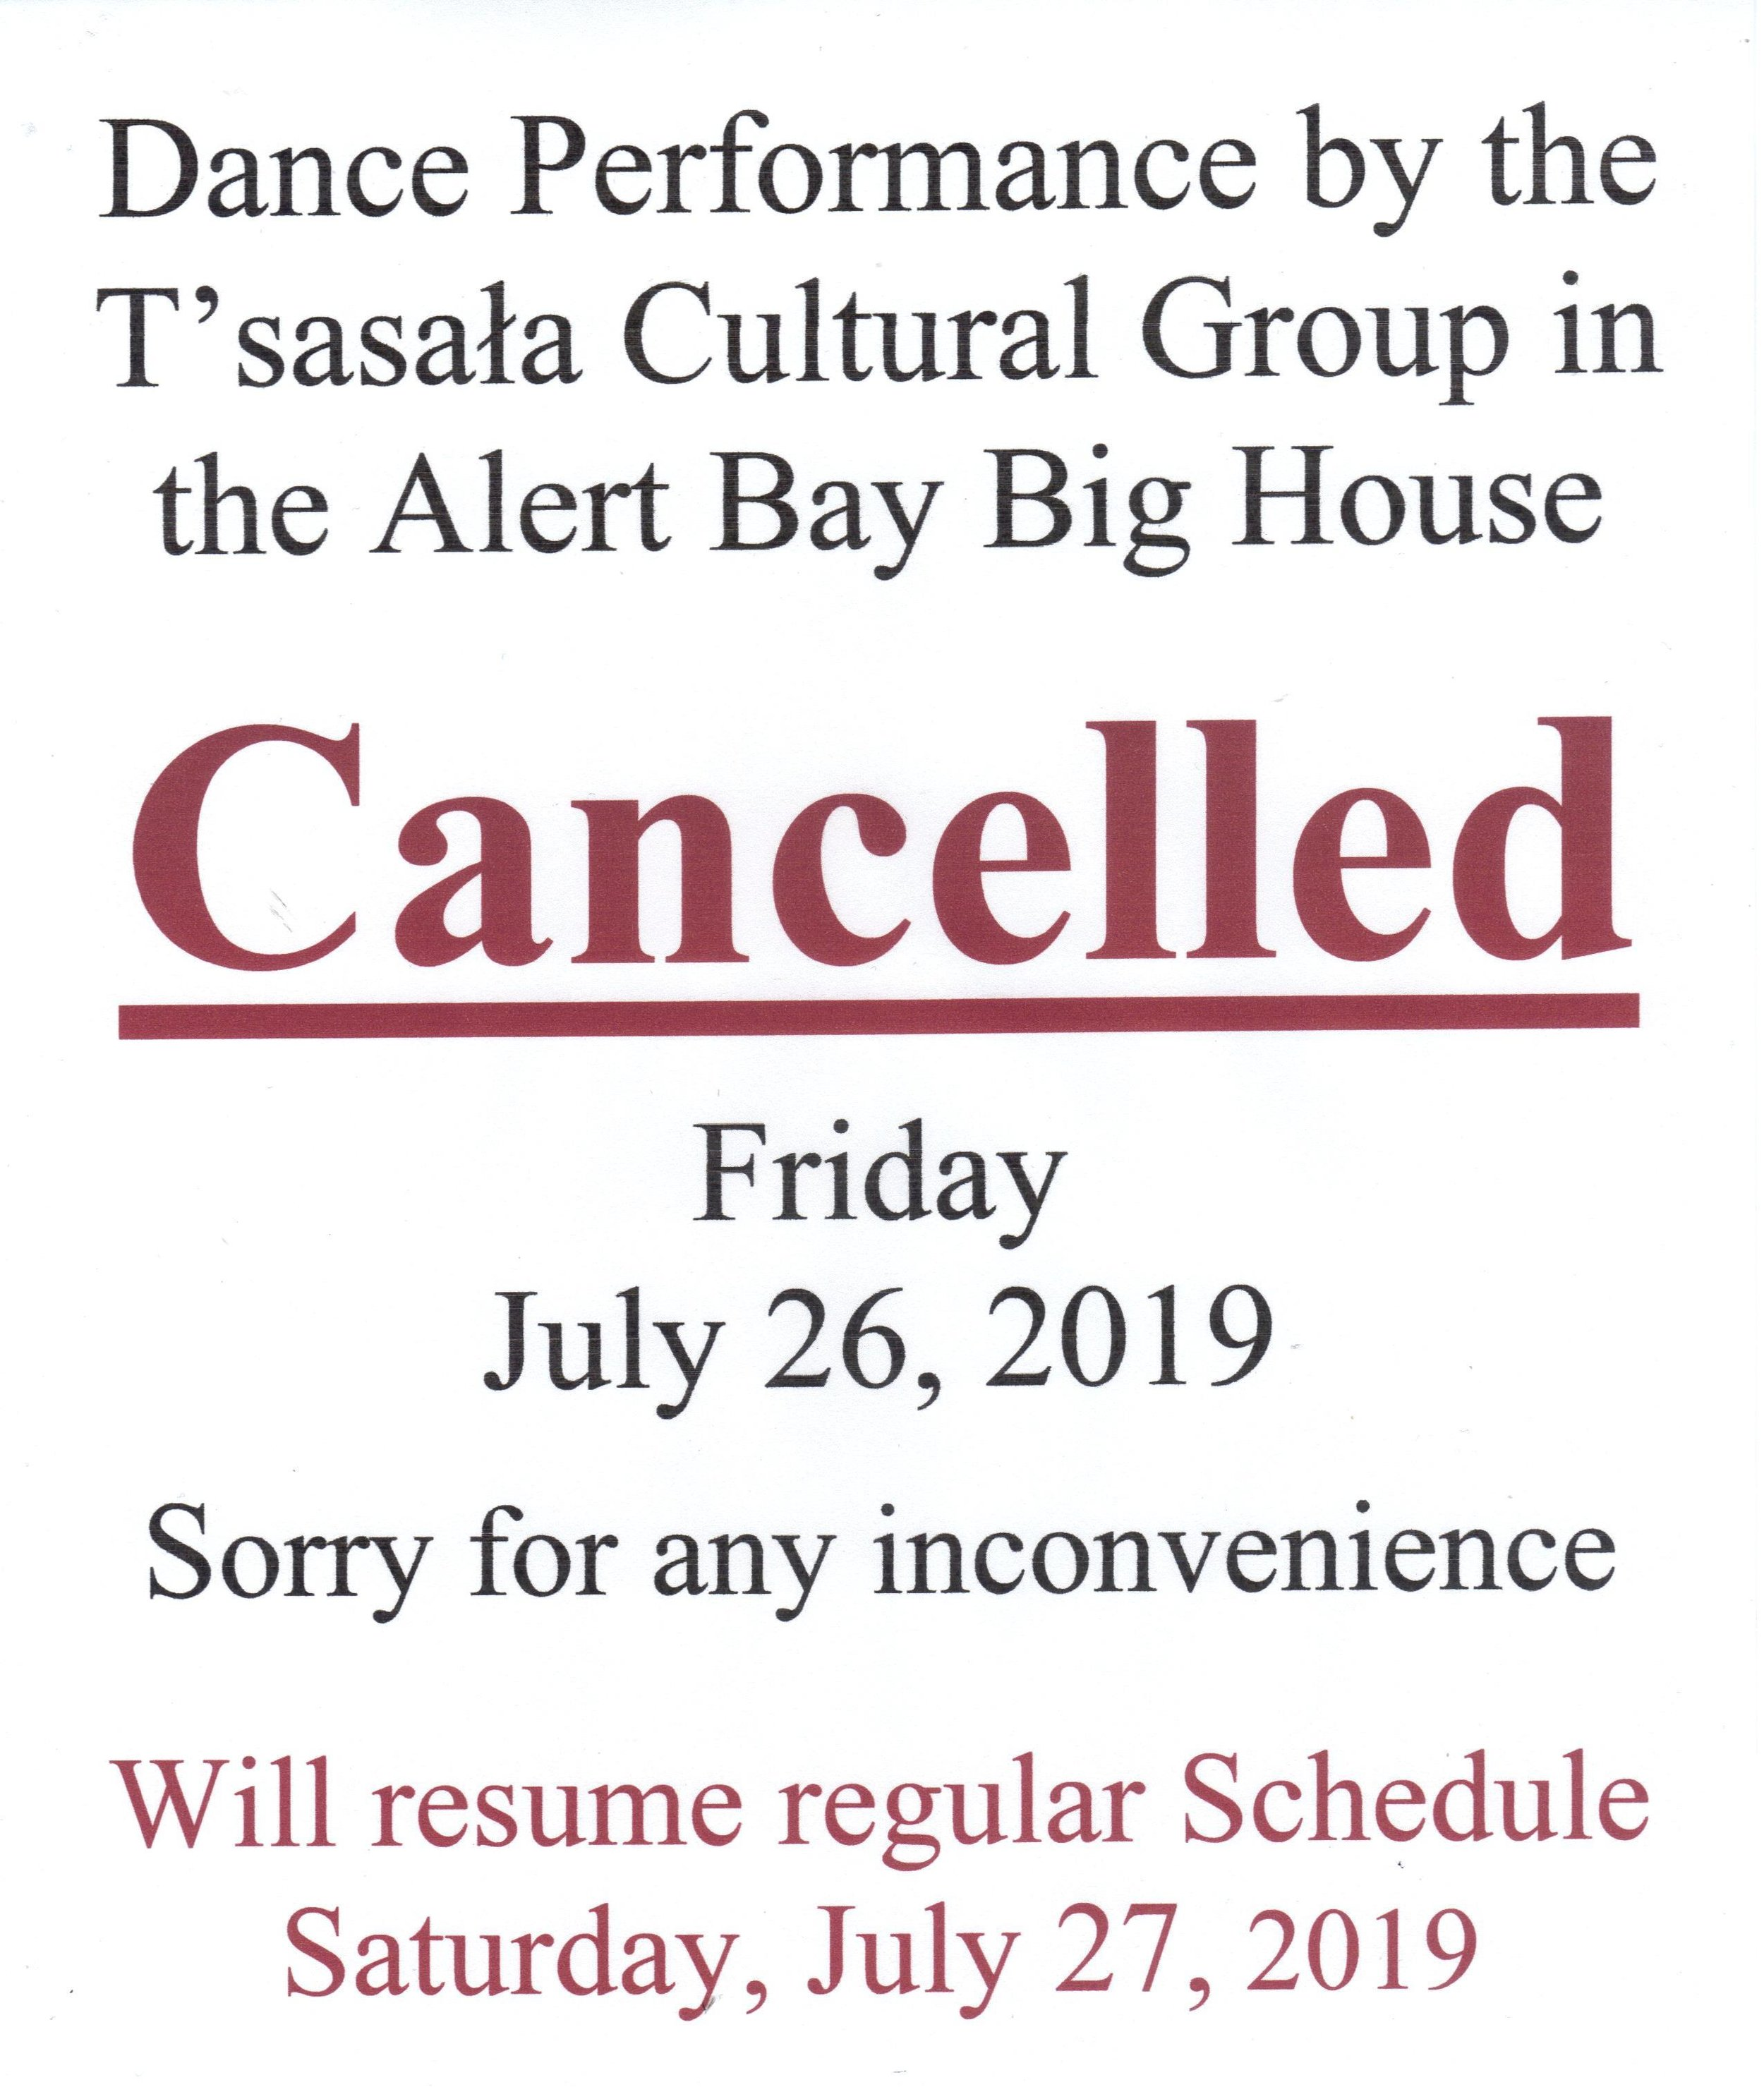 Dancing Cancelled July 26, 2019.jpg